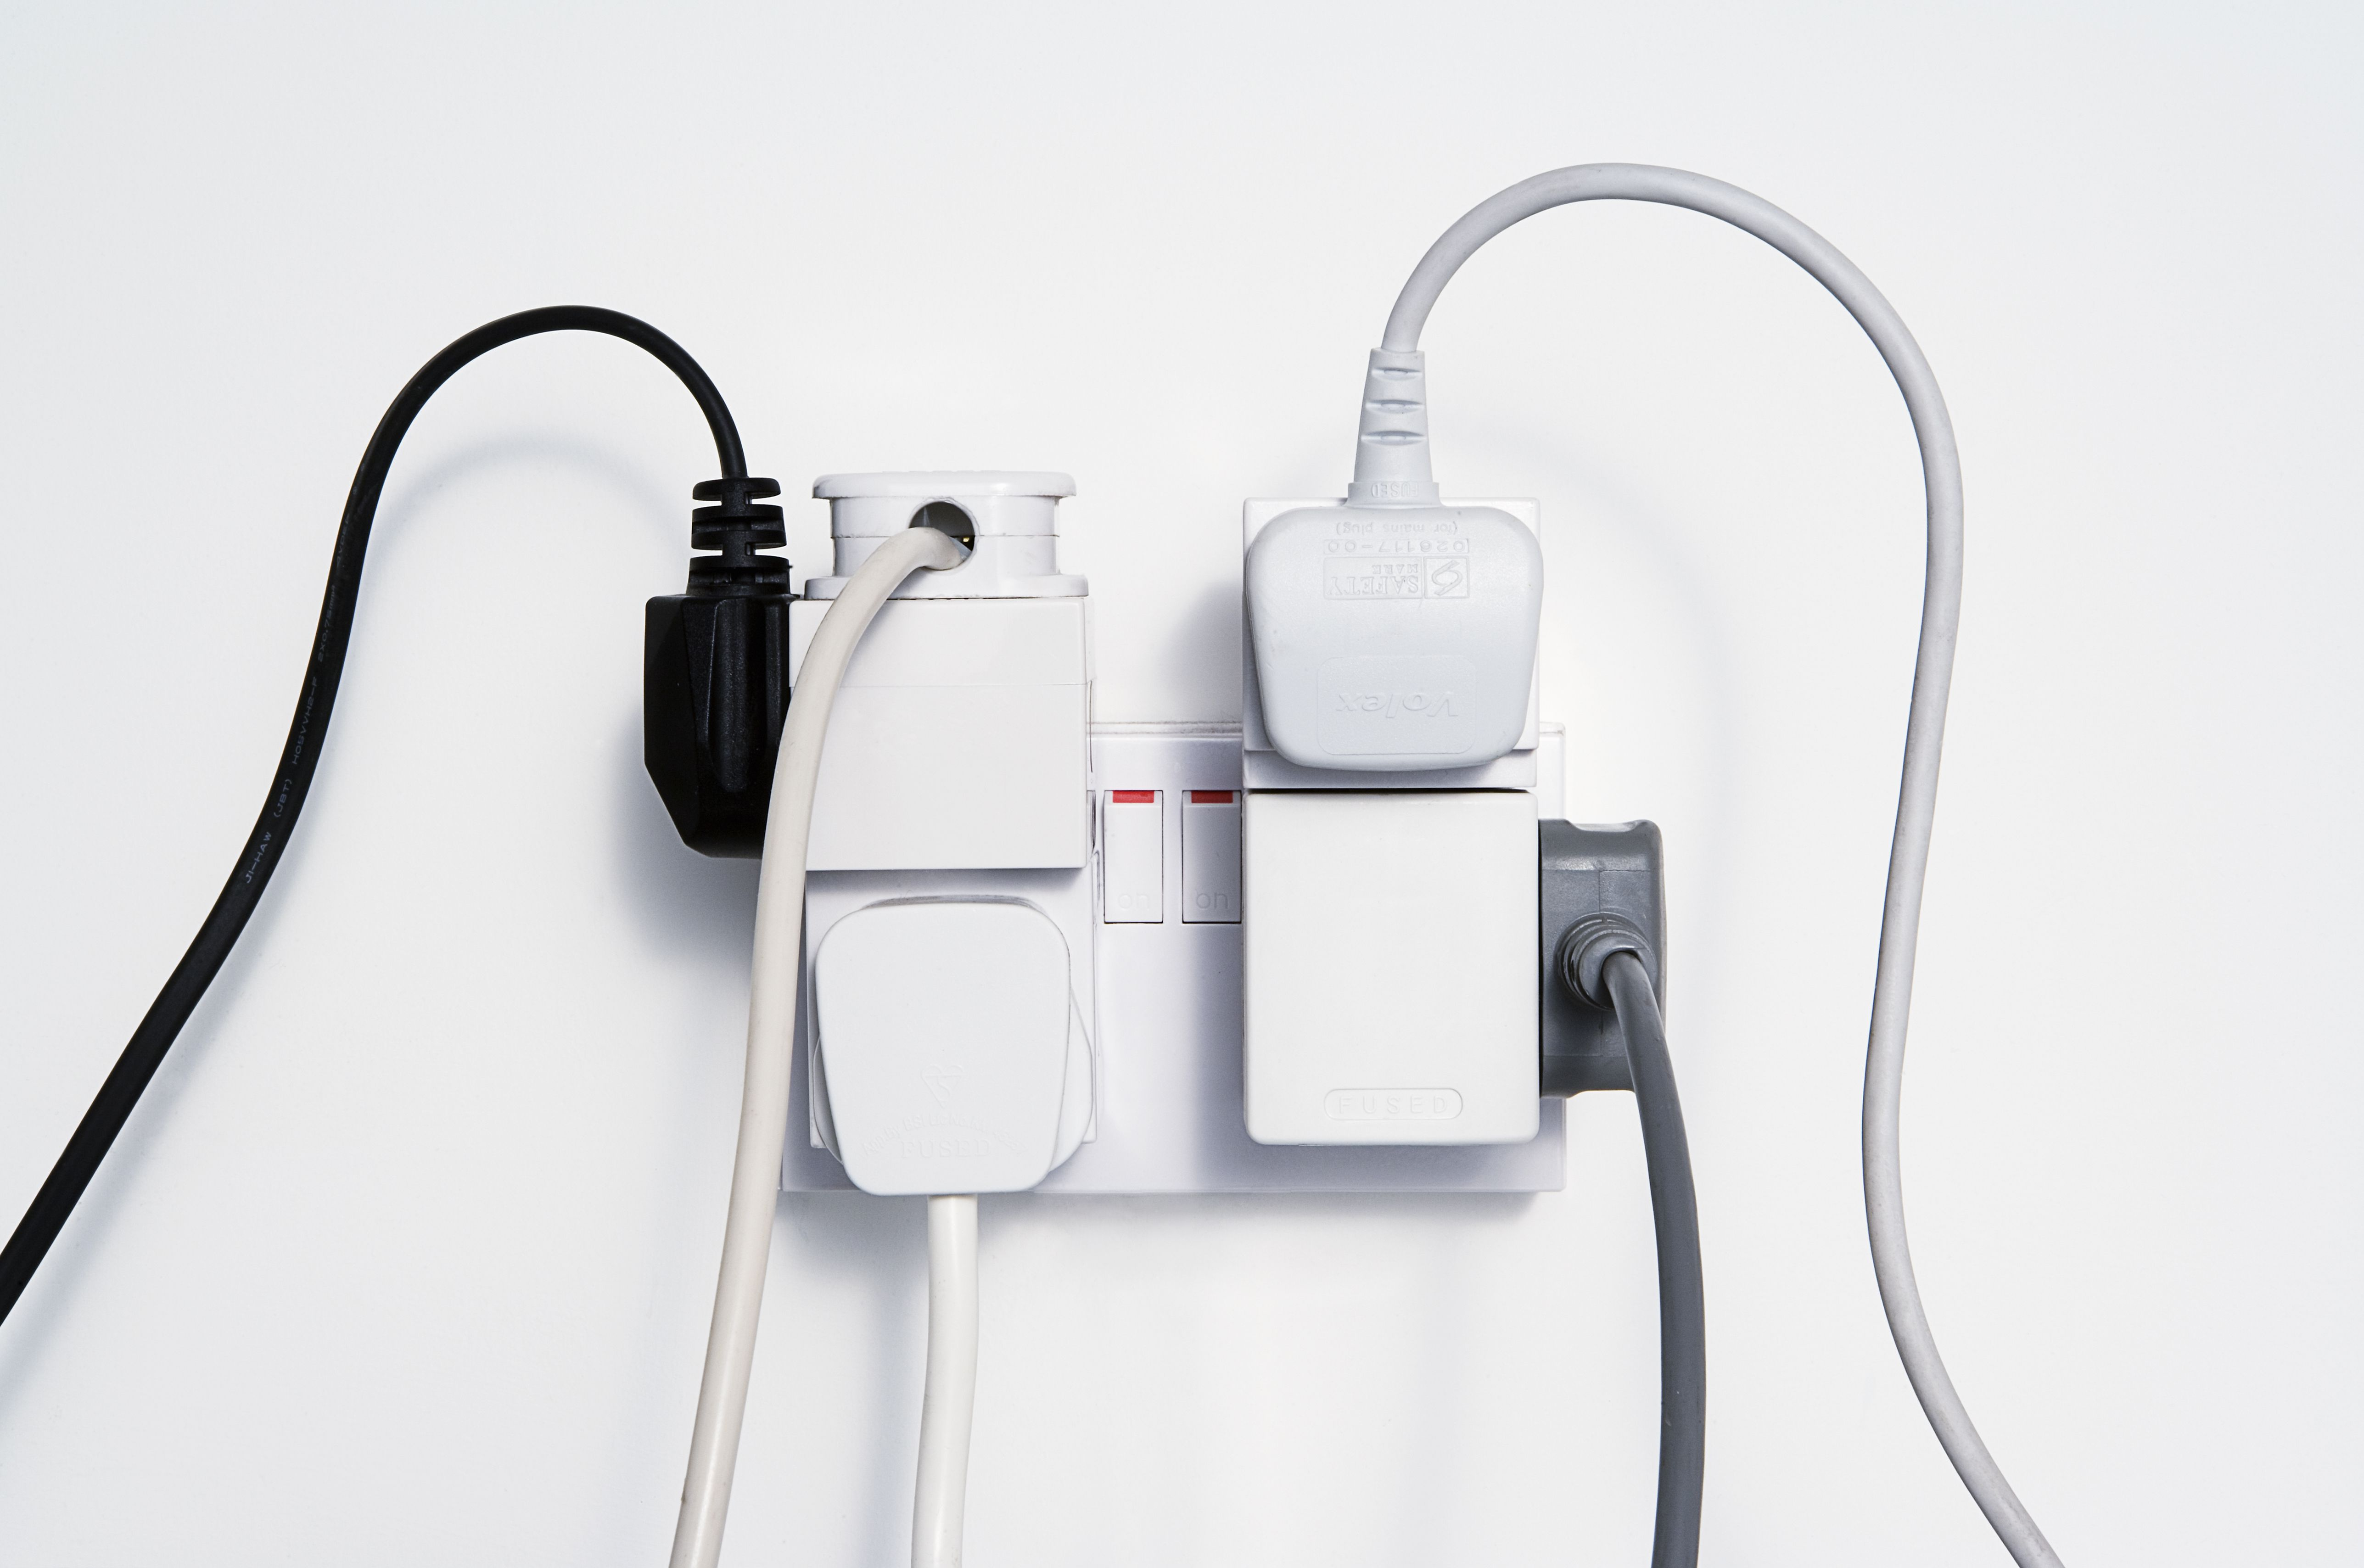 International Power Adapters What You Need To Know Wiring Up A 110v Plug